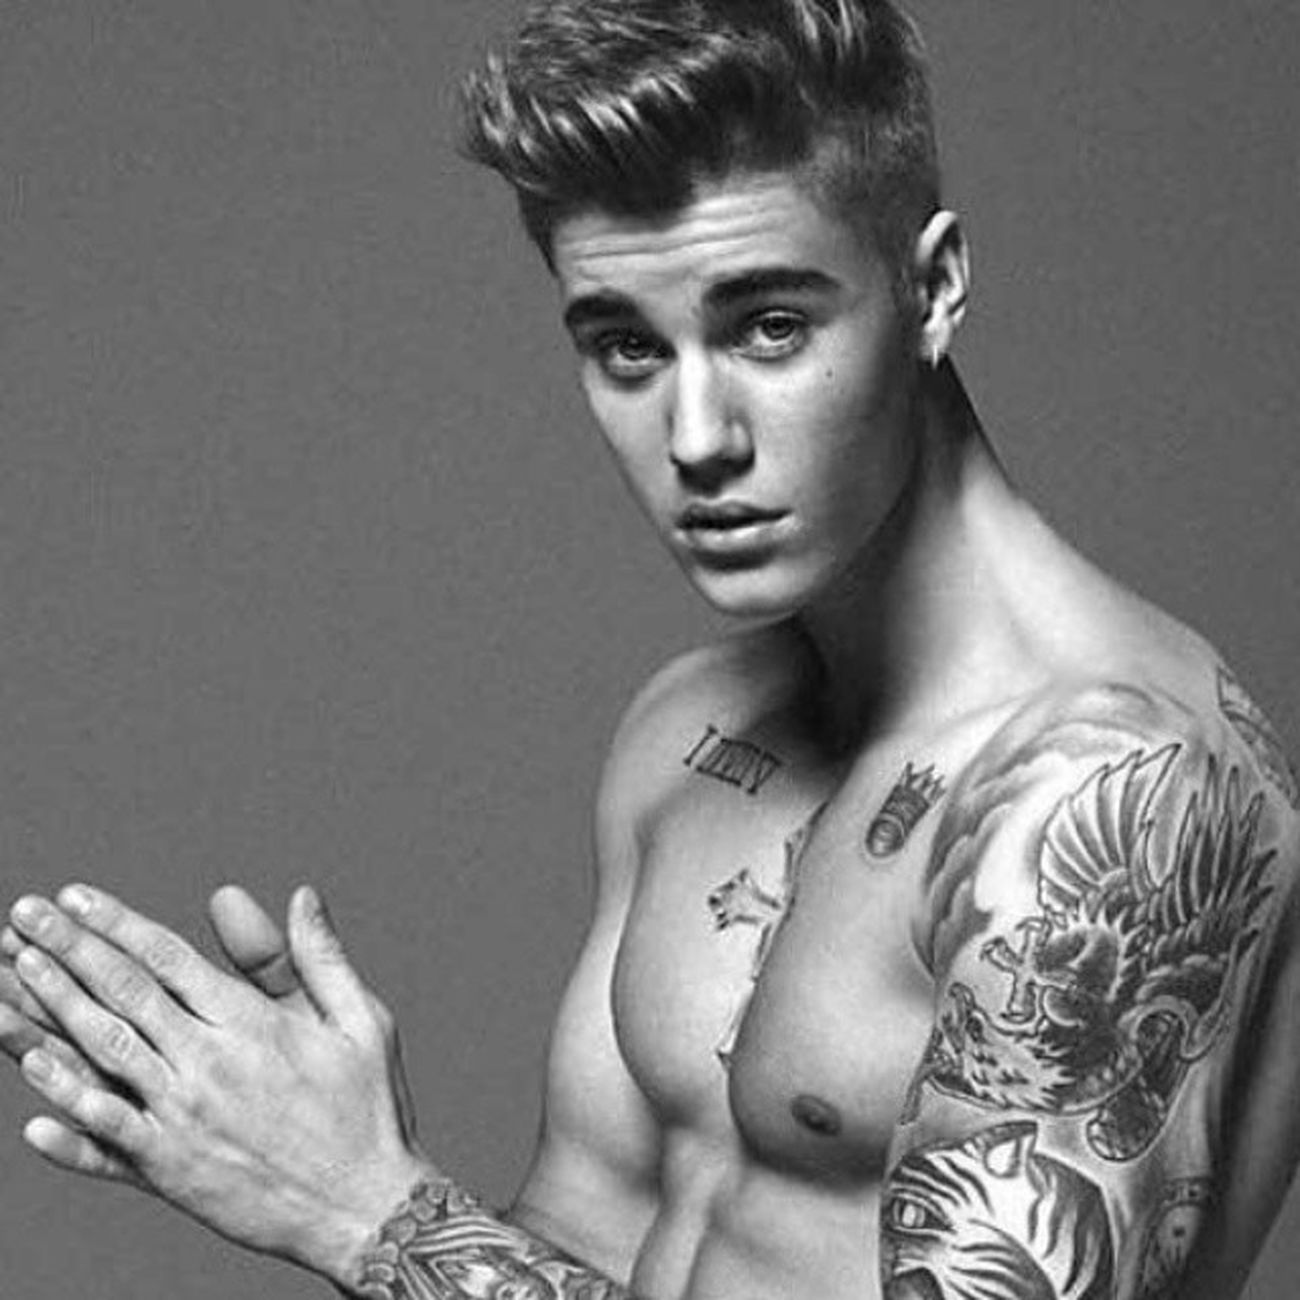 Unbeliebable! Pop brat Justinbieber chosen as new Calvinklein model.